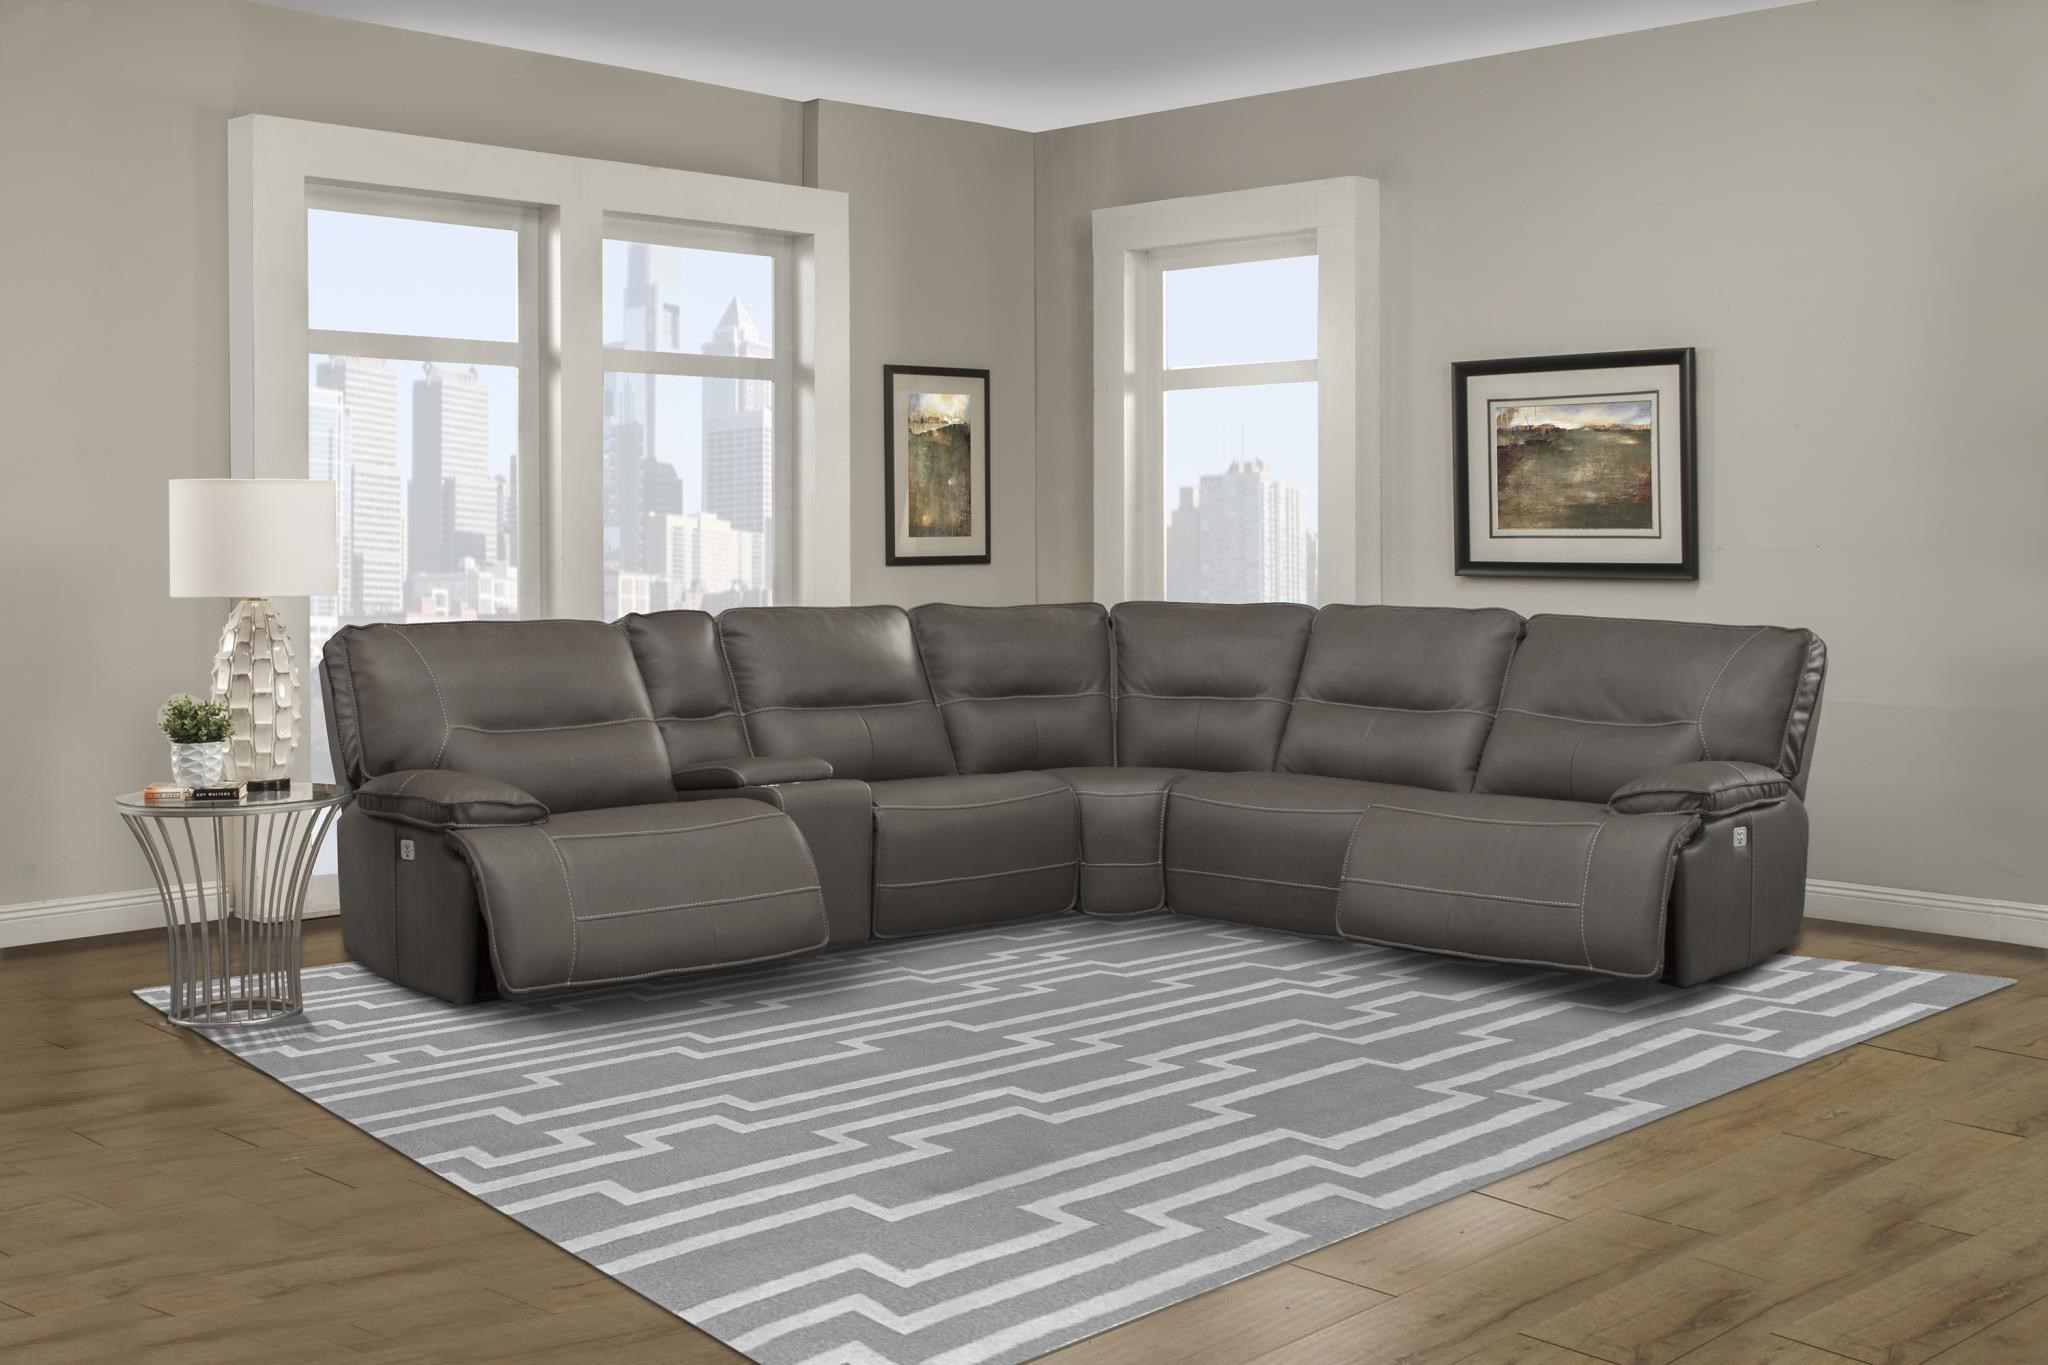 SPARTACUS Parker House Power Reclining Sectional by Parker House at Dream Home Interiors